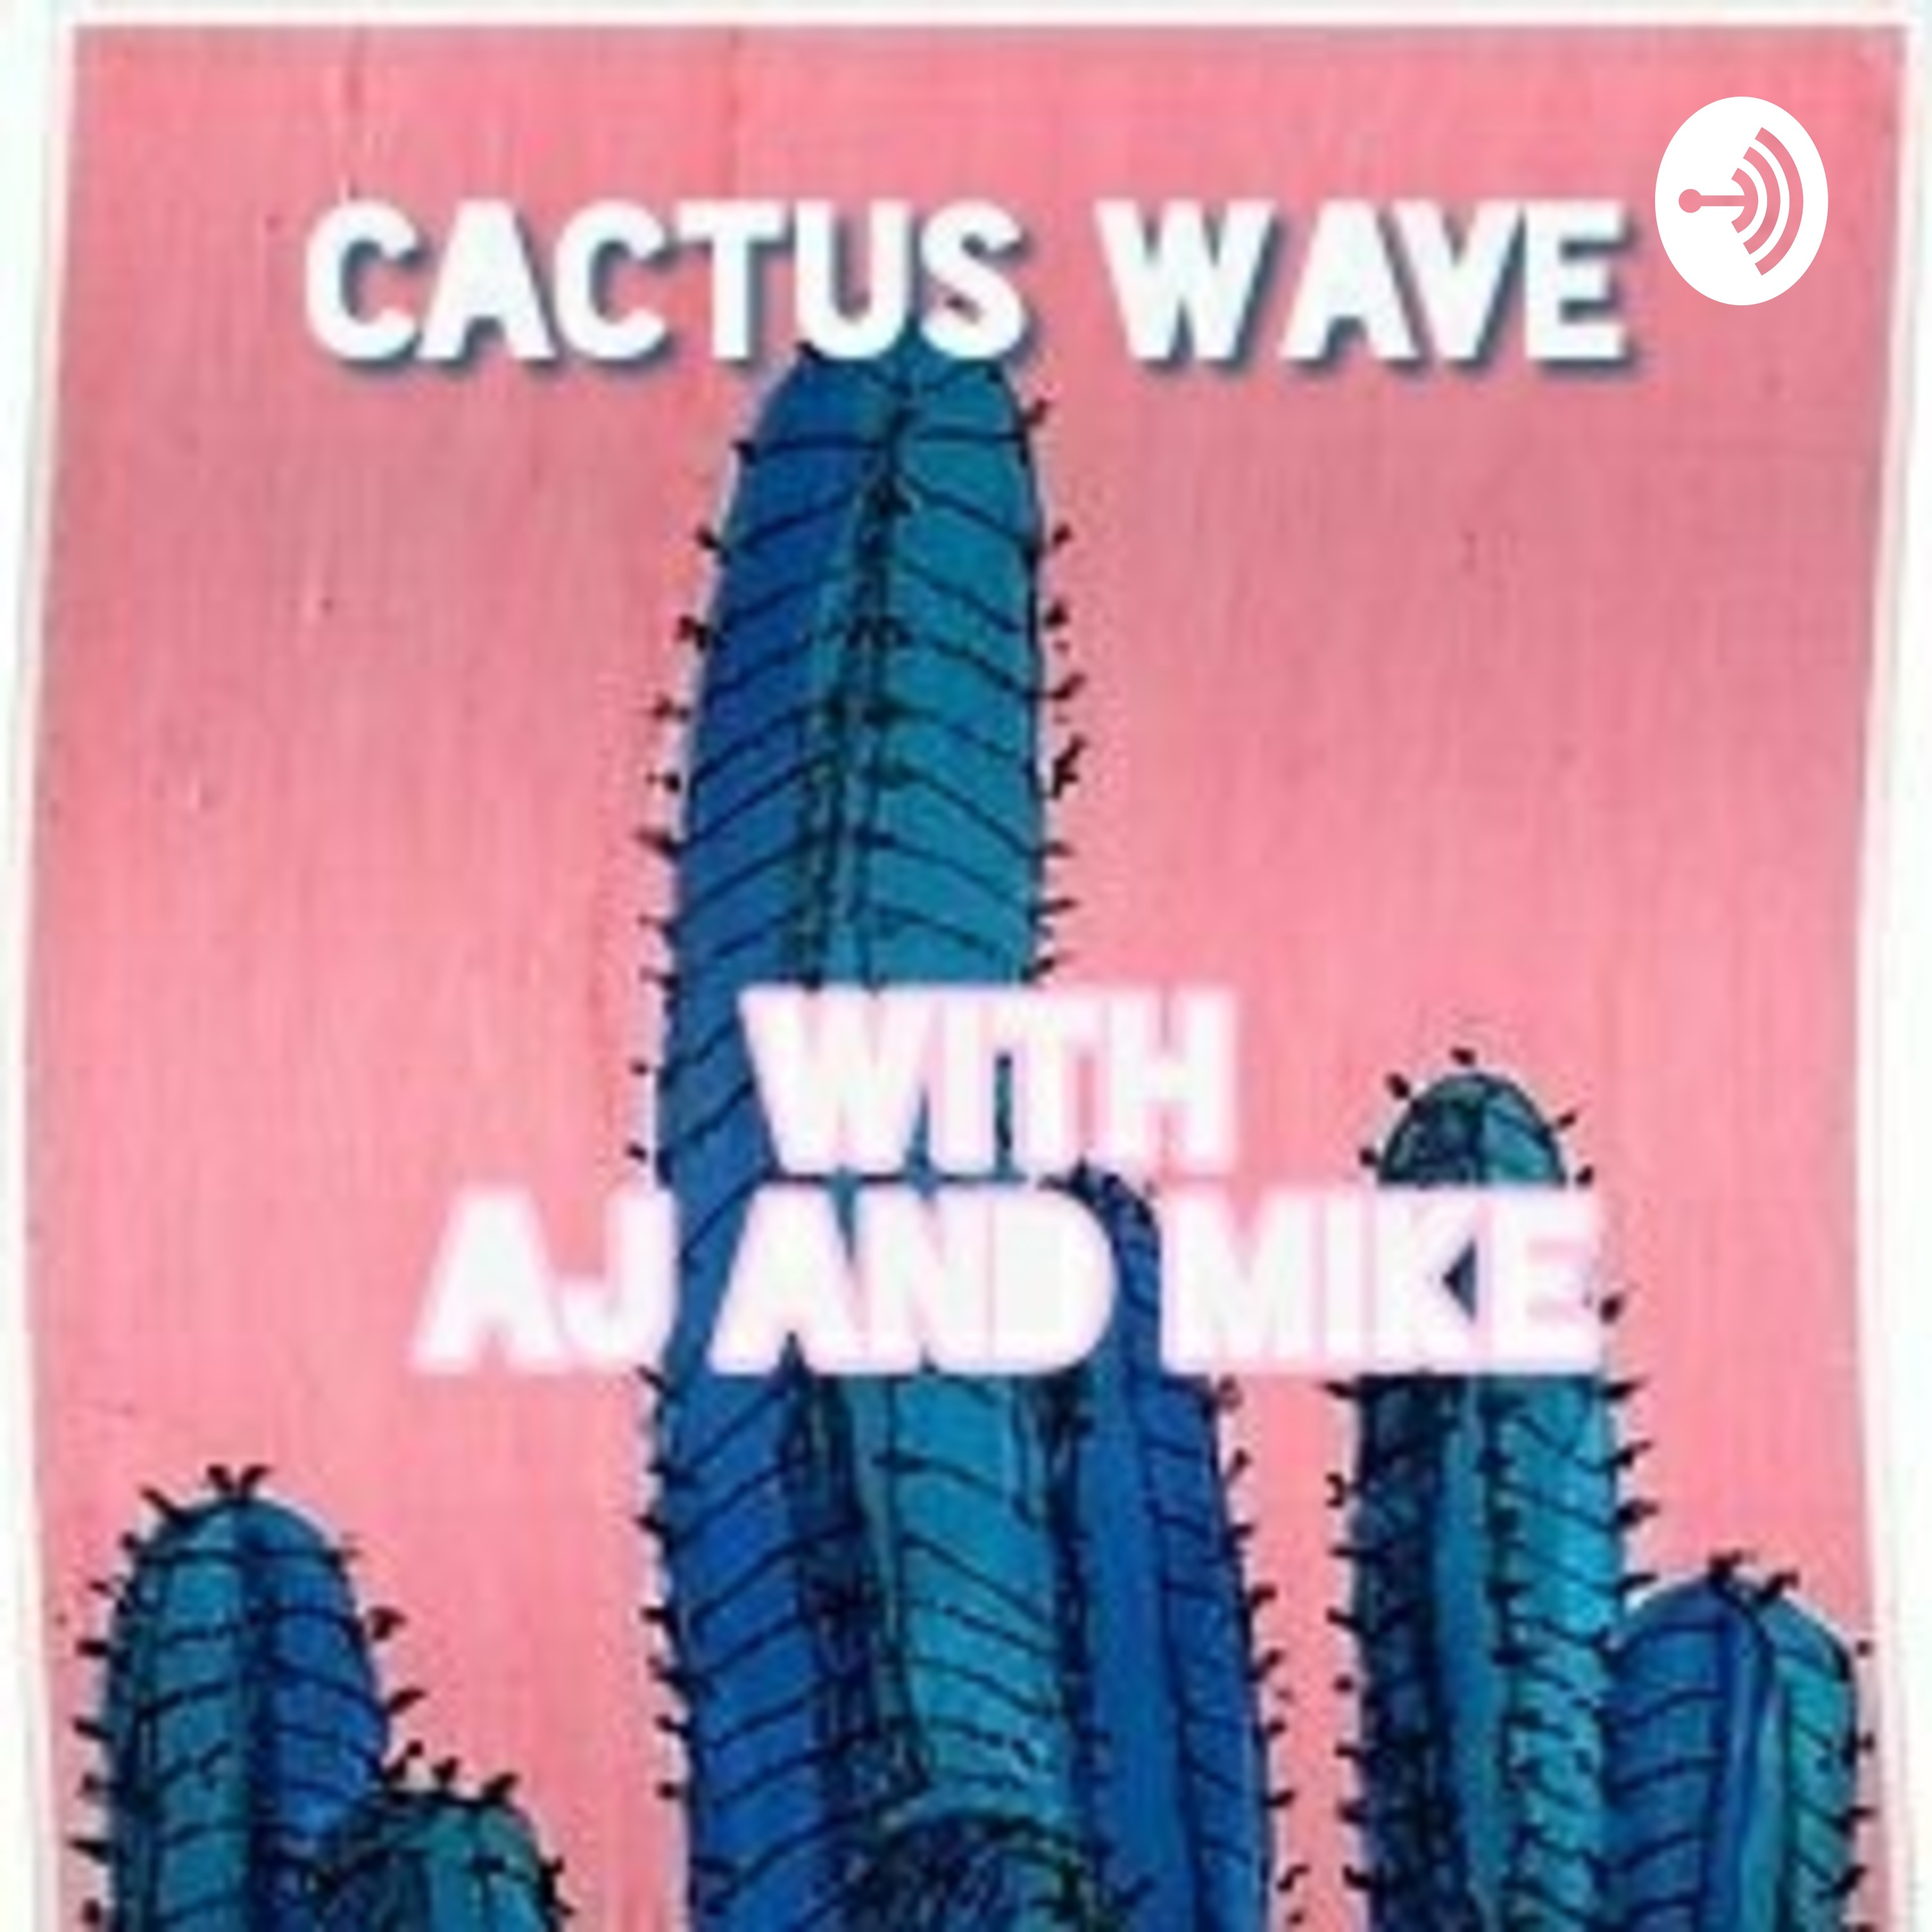 Cactus Wave S01 E03: Belle Delphine, Hot Tubs and Relationships, etc.